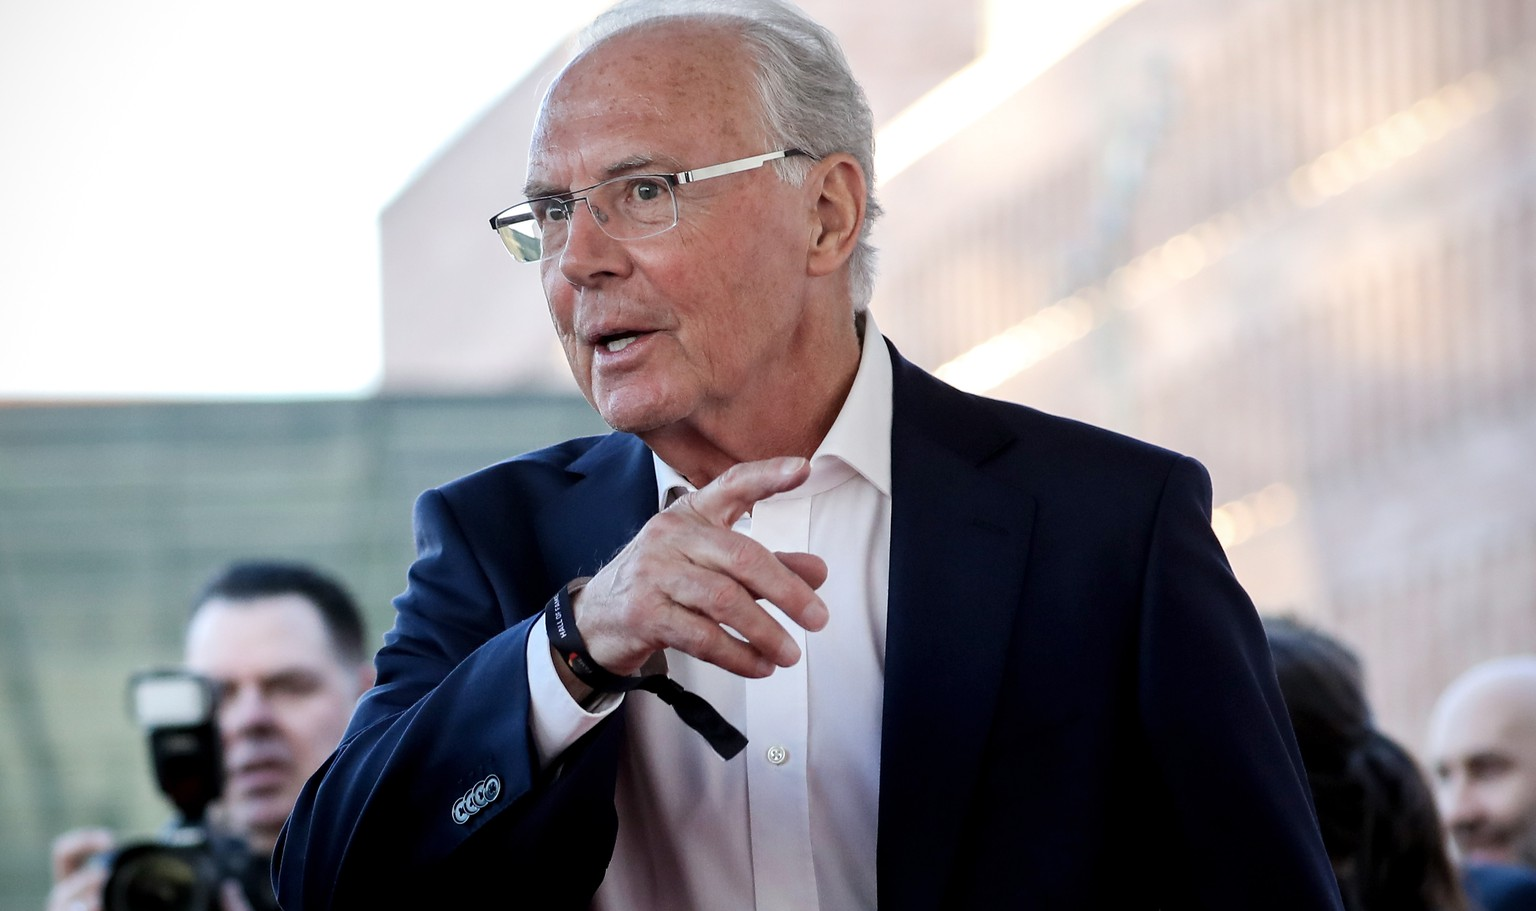 epa07478777 German former soccer player Franz Beckenbauer reacts as he arrives for the opening gala of the 'Hall Of Fame' of German football in Dortmund, Germany, 01 April 2019. The Hall Of Fame will be part of the permanent exhibition in the German Football Museum, where players and coaches of men's and women's soccer of German origin will be honored for their outstanding achievements in shaping German soccer from 1900 until today.  EPA/FRIEDEMANN VOGEL